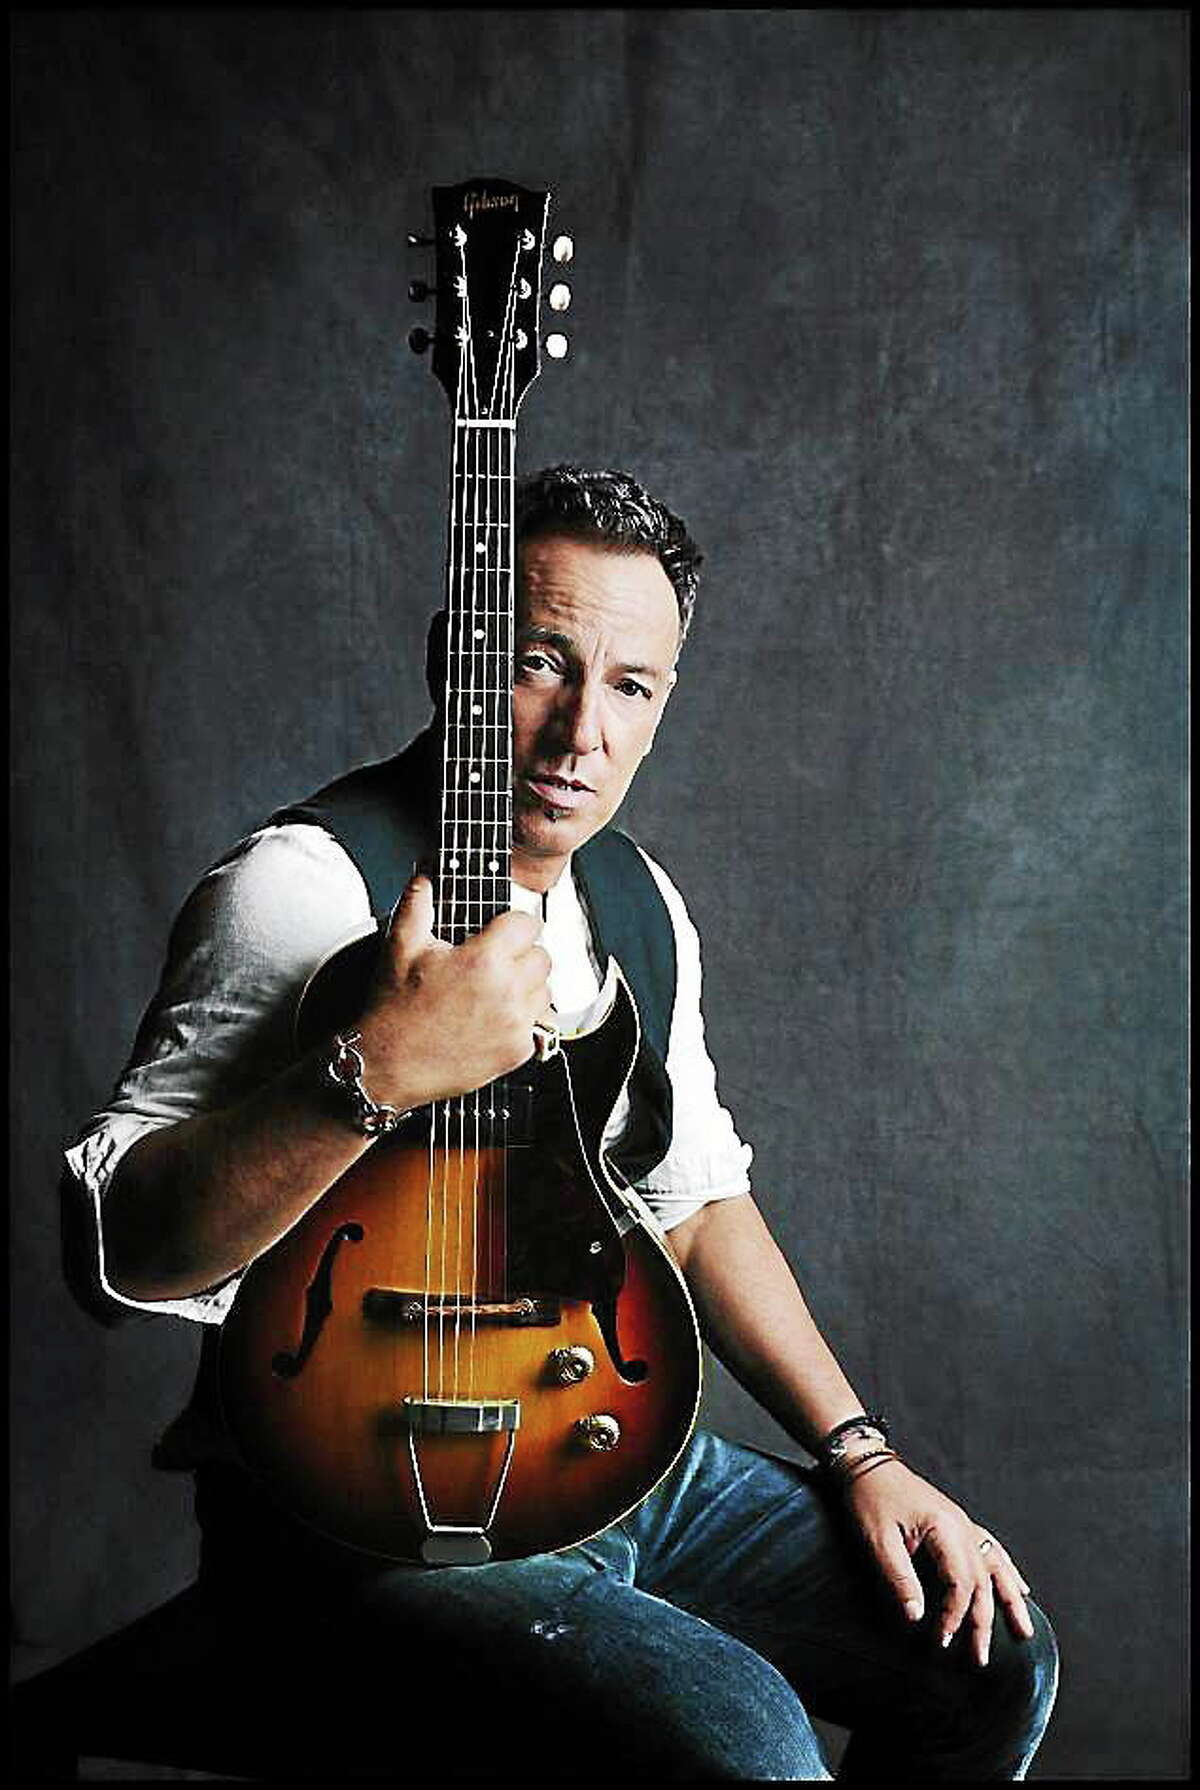 Submitted photo - Bruce Springsteen Bruce Springsteen and the E Street Band have announced tour dates for 2014, including a stop at the Mohegan Sun Arena in Uncasville on May 17-18.